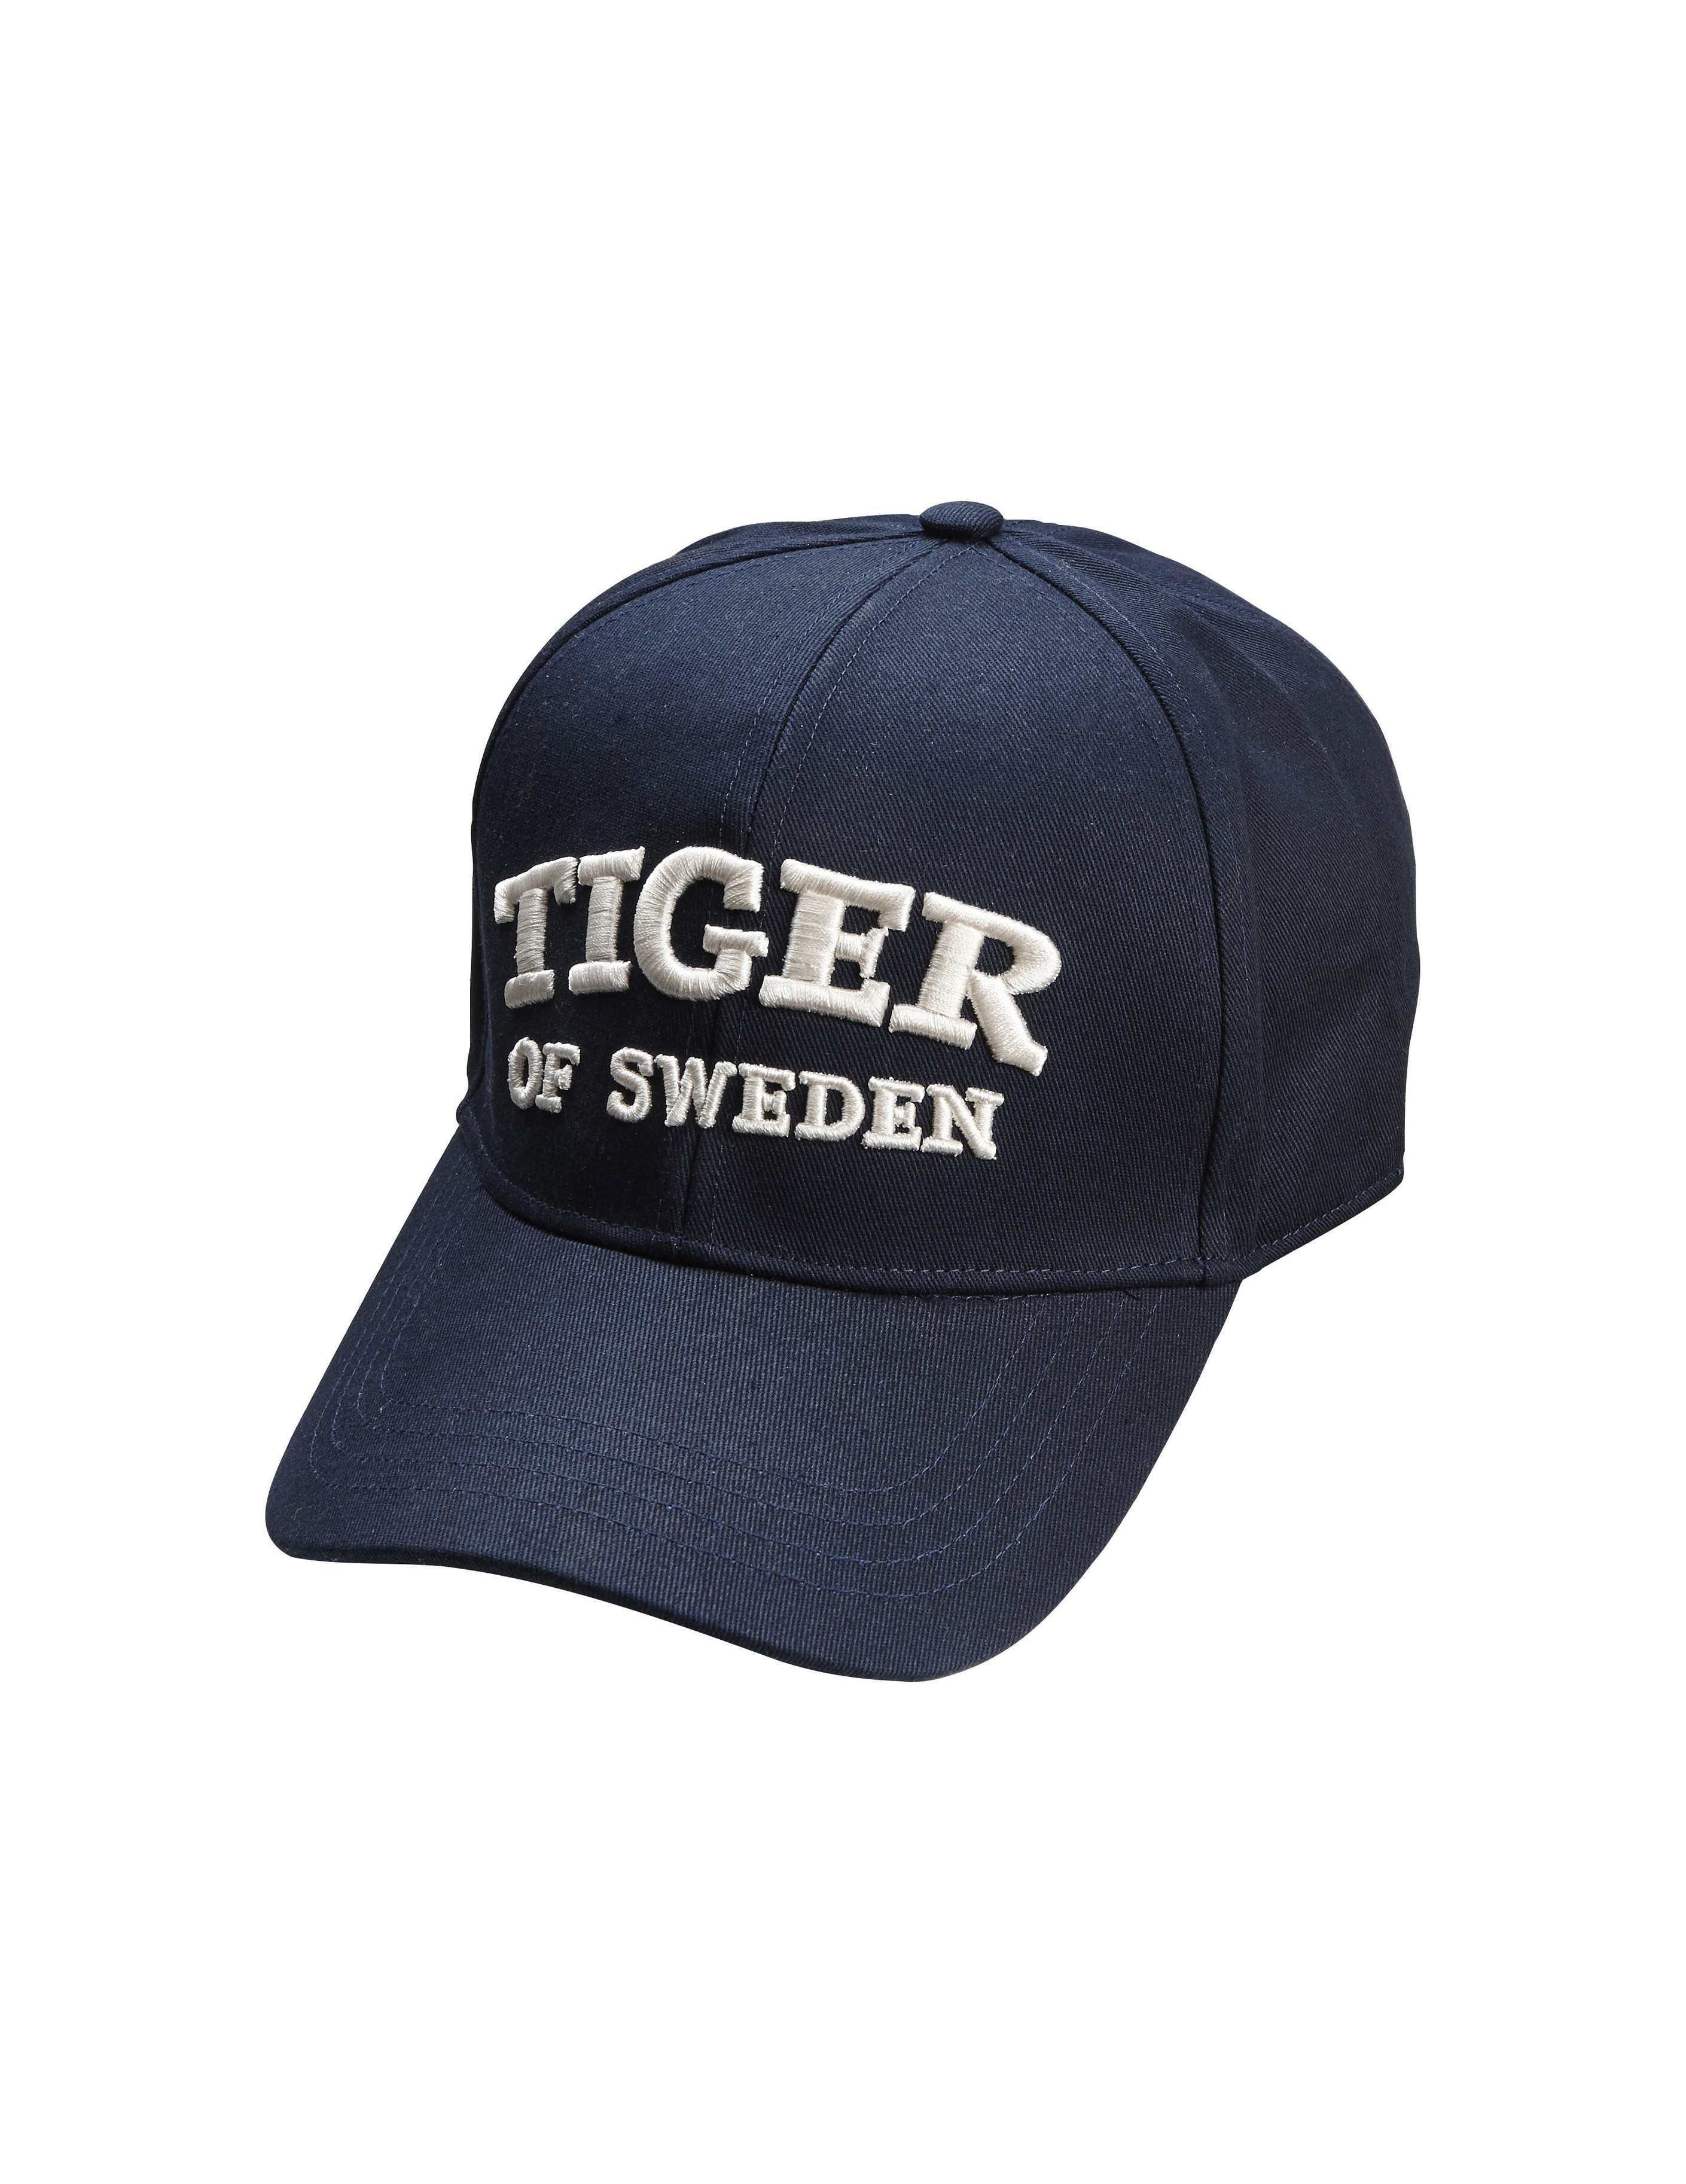 2a24a848cd1 Jarrod cap - Men s classic baseball cap in cotton canvas . Features  adjustable leather strap at back. Tiger of Sweden logo embroidery in  off-white at front.